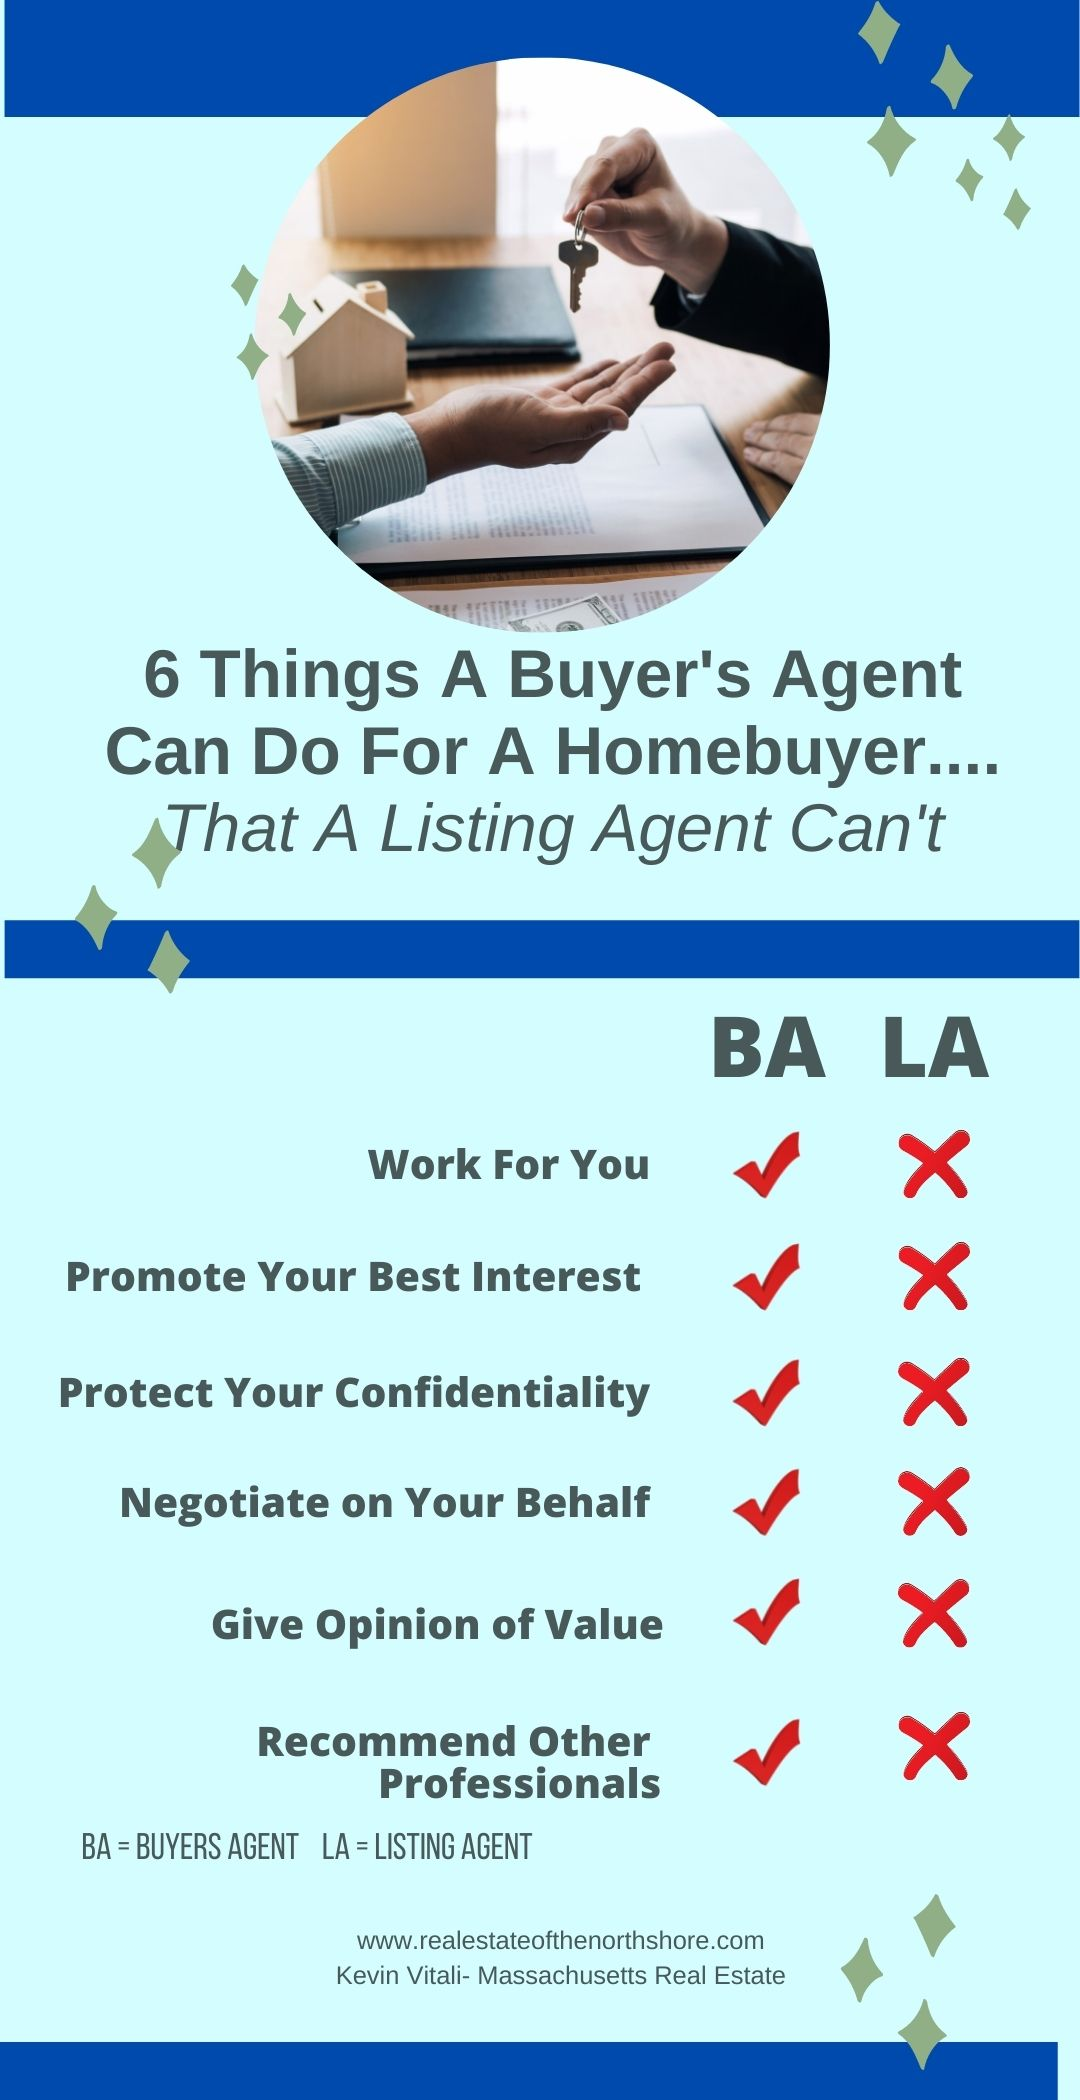 Infoggraphic of buyer's agent vs listing agent